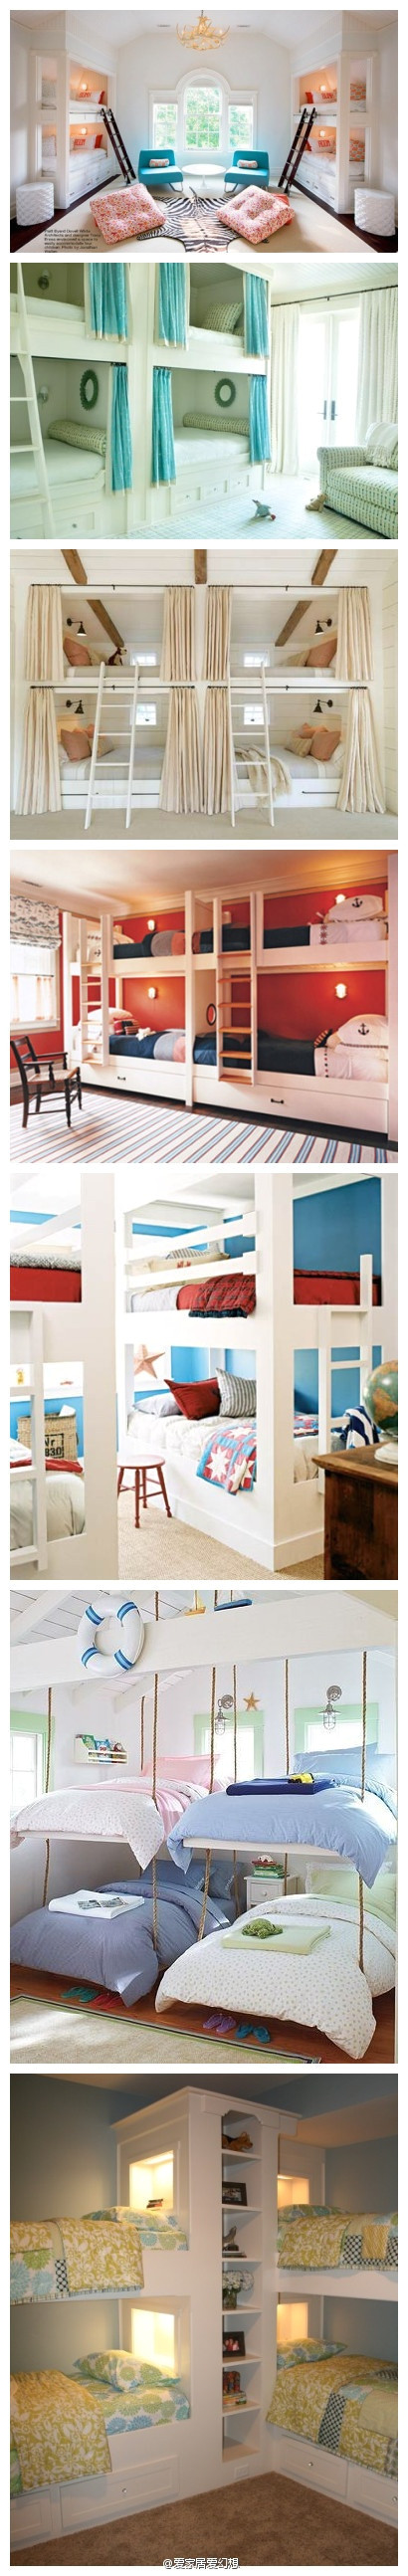 i really want a bunk bed